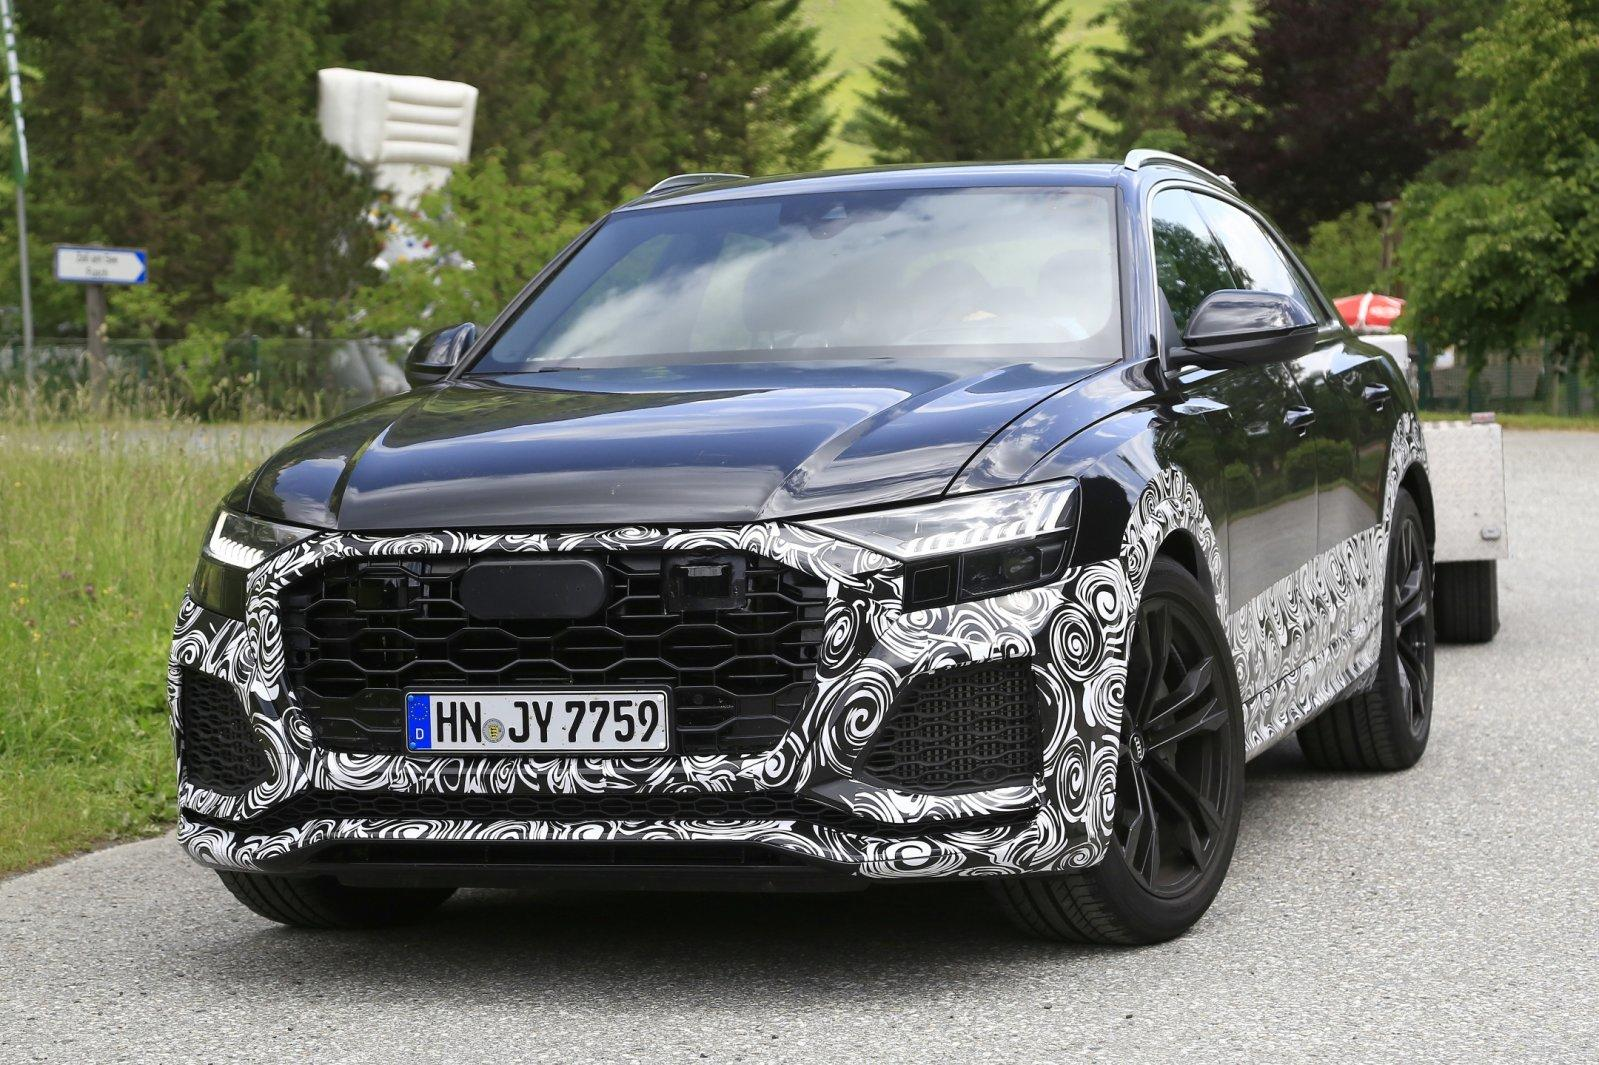 Audi RS Q8 - Poze spion - Audi RS Q8 - Poze spion